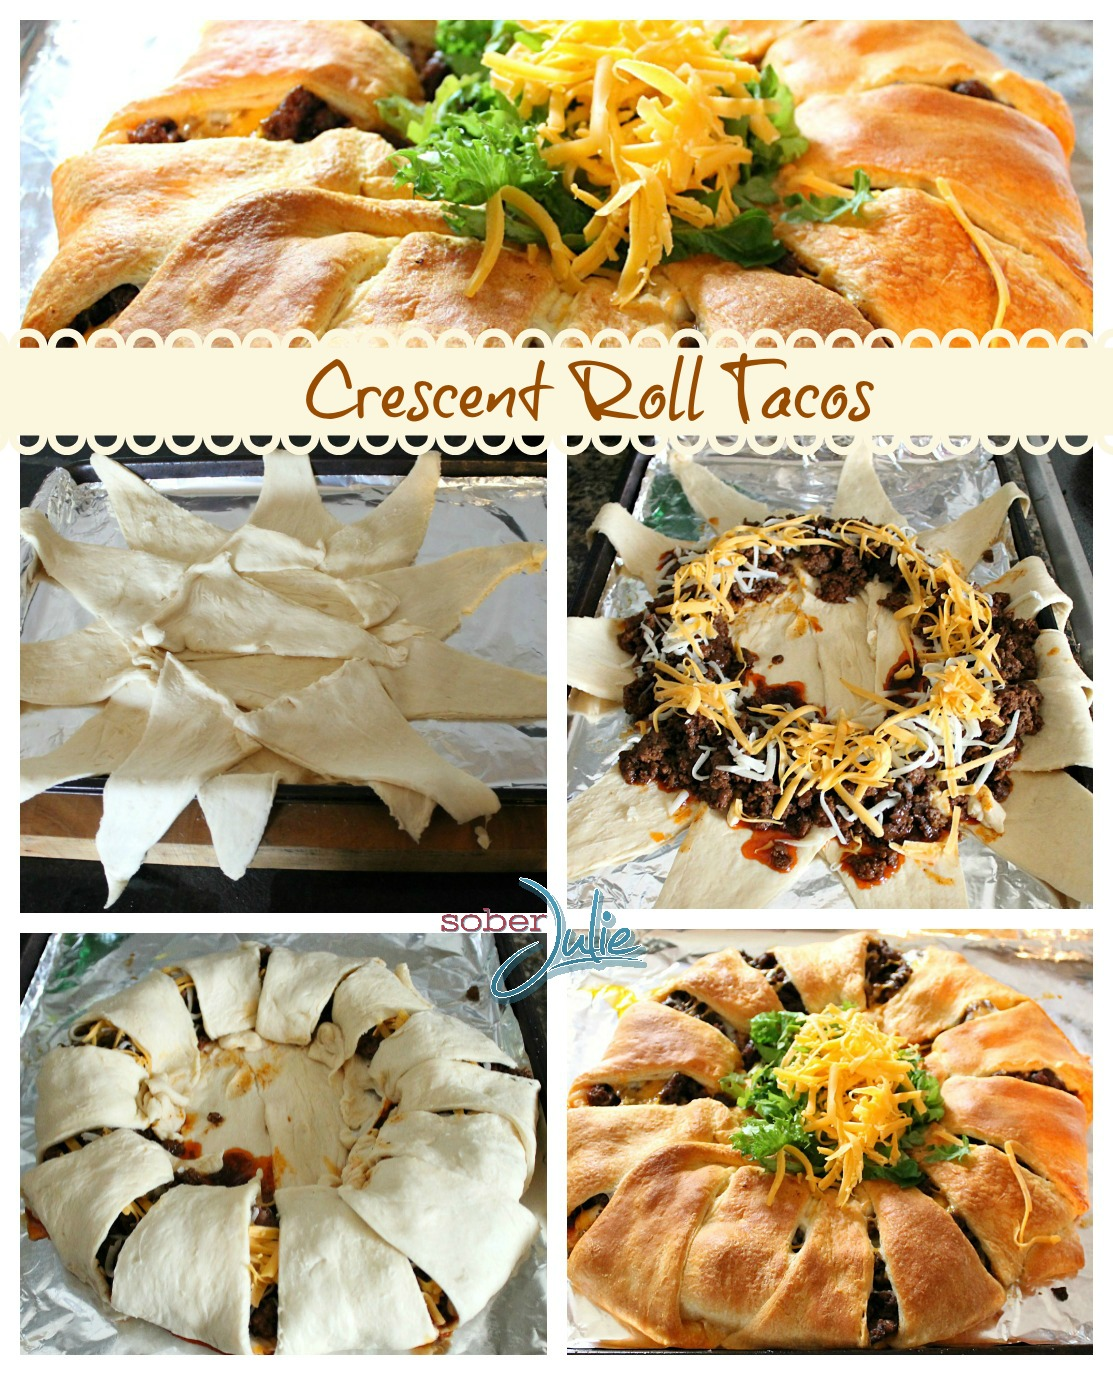 Crescent Roll Tacos recipe Collage